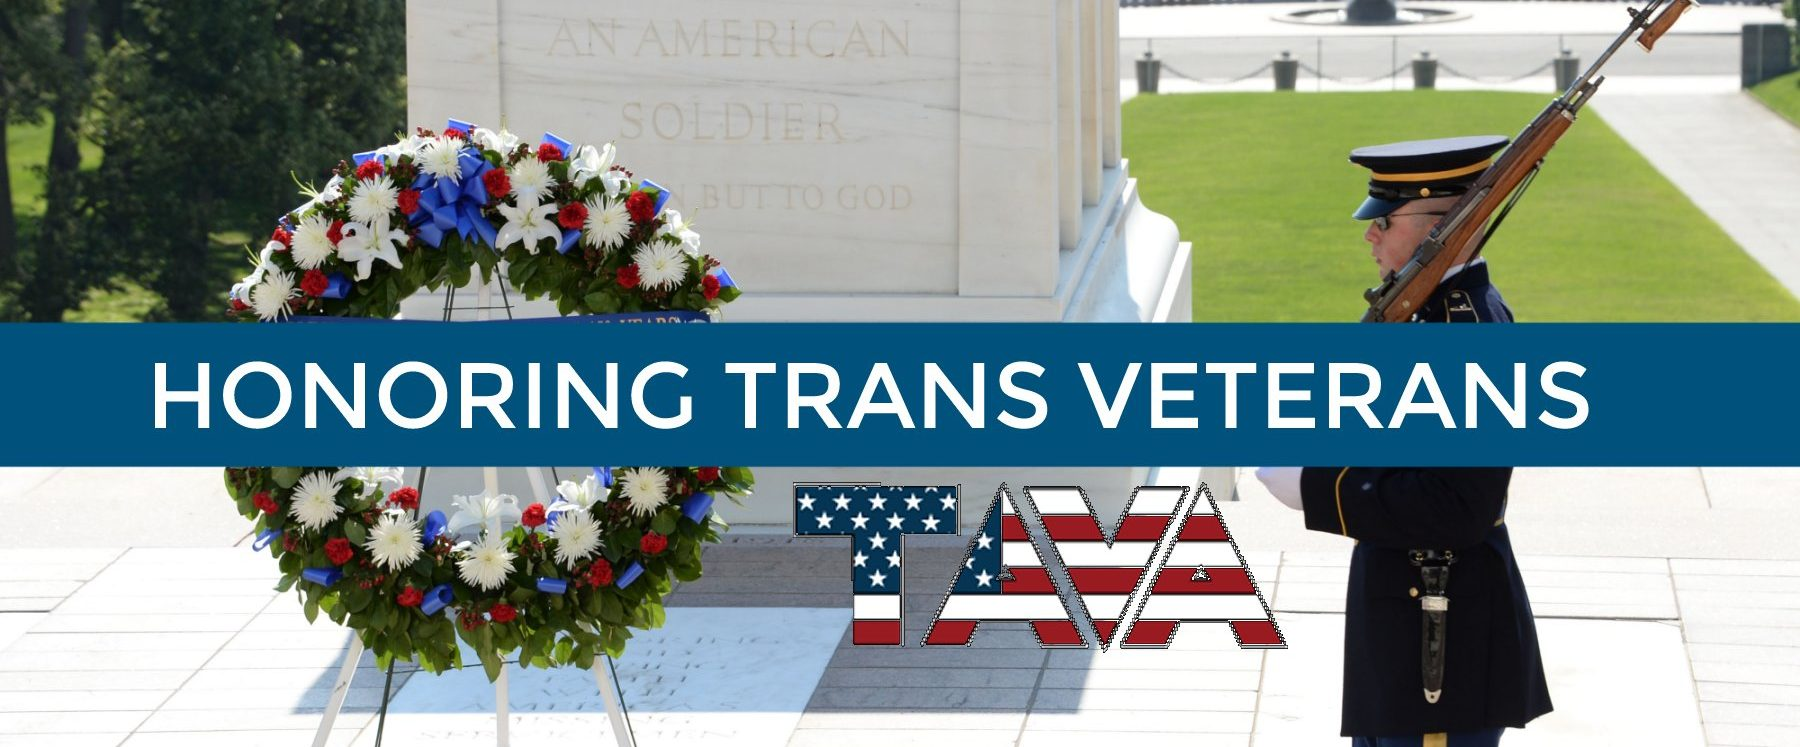 Wreath Laying Ceremony for Trans Veterans